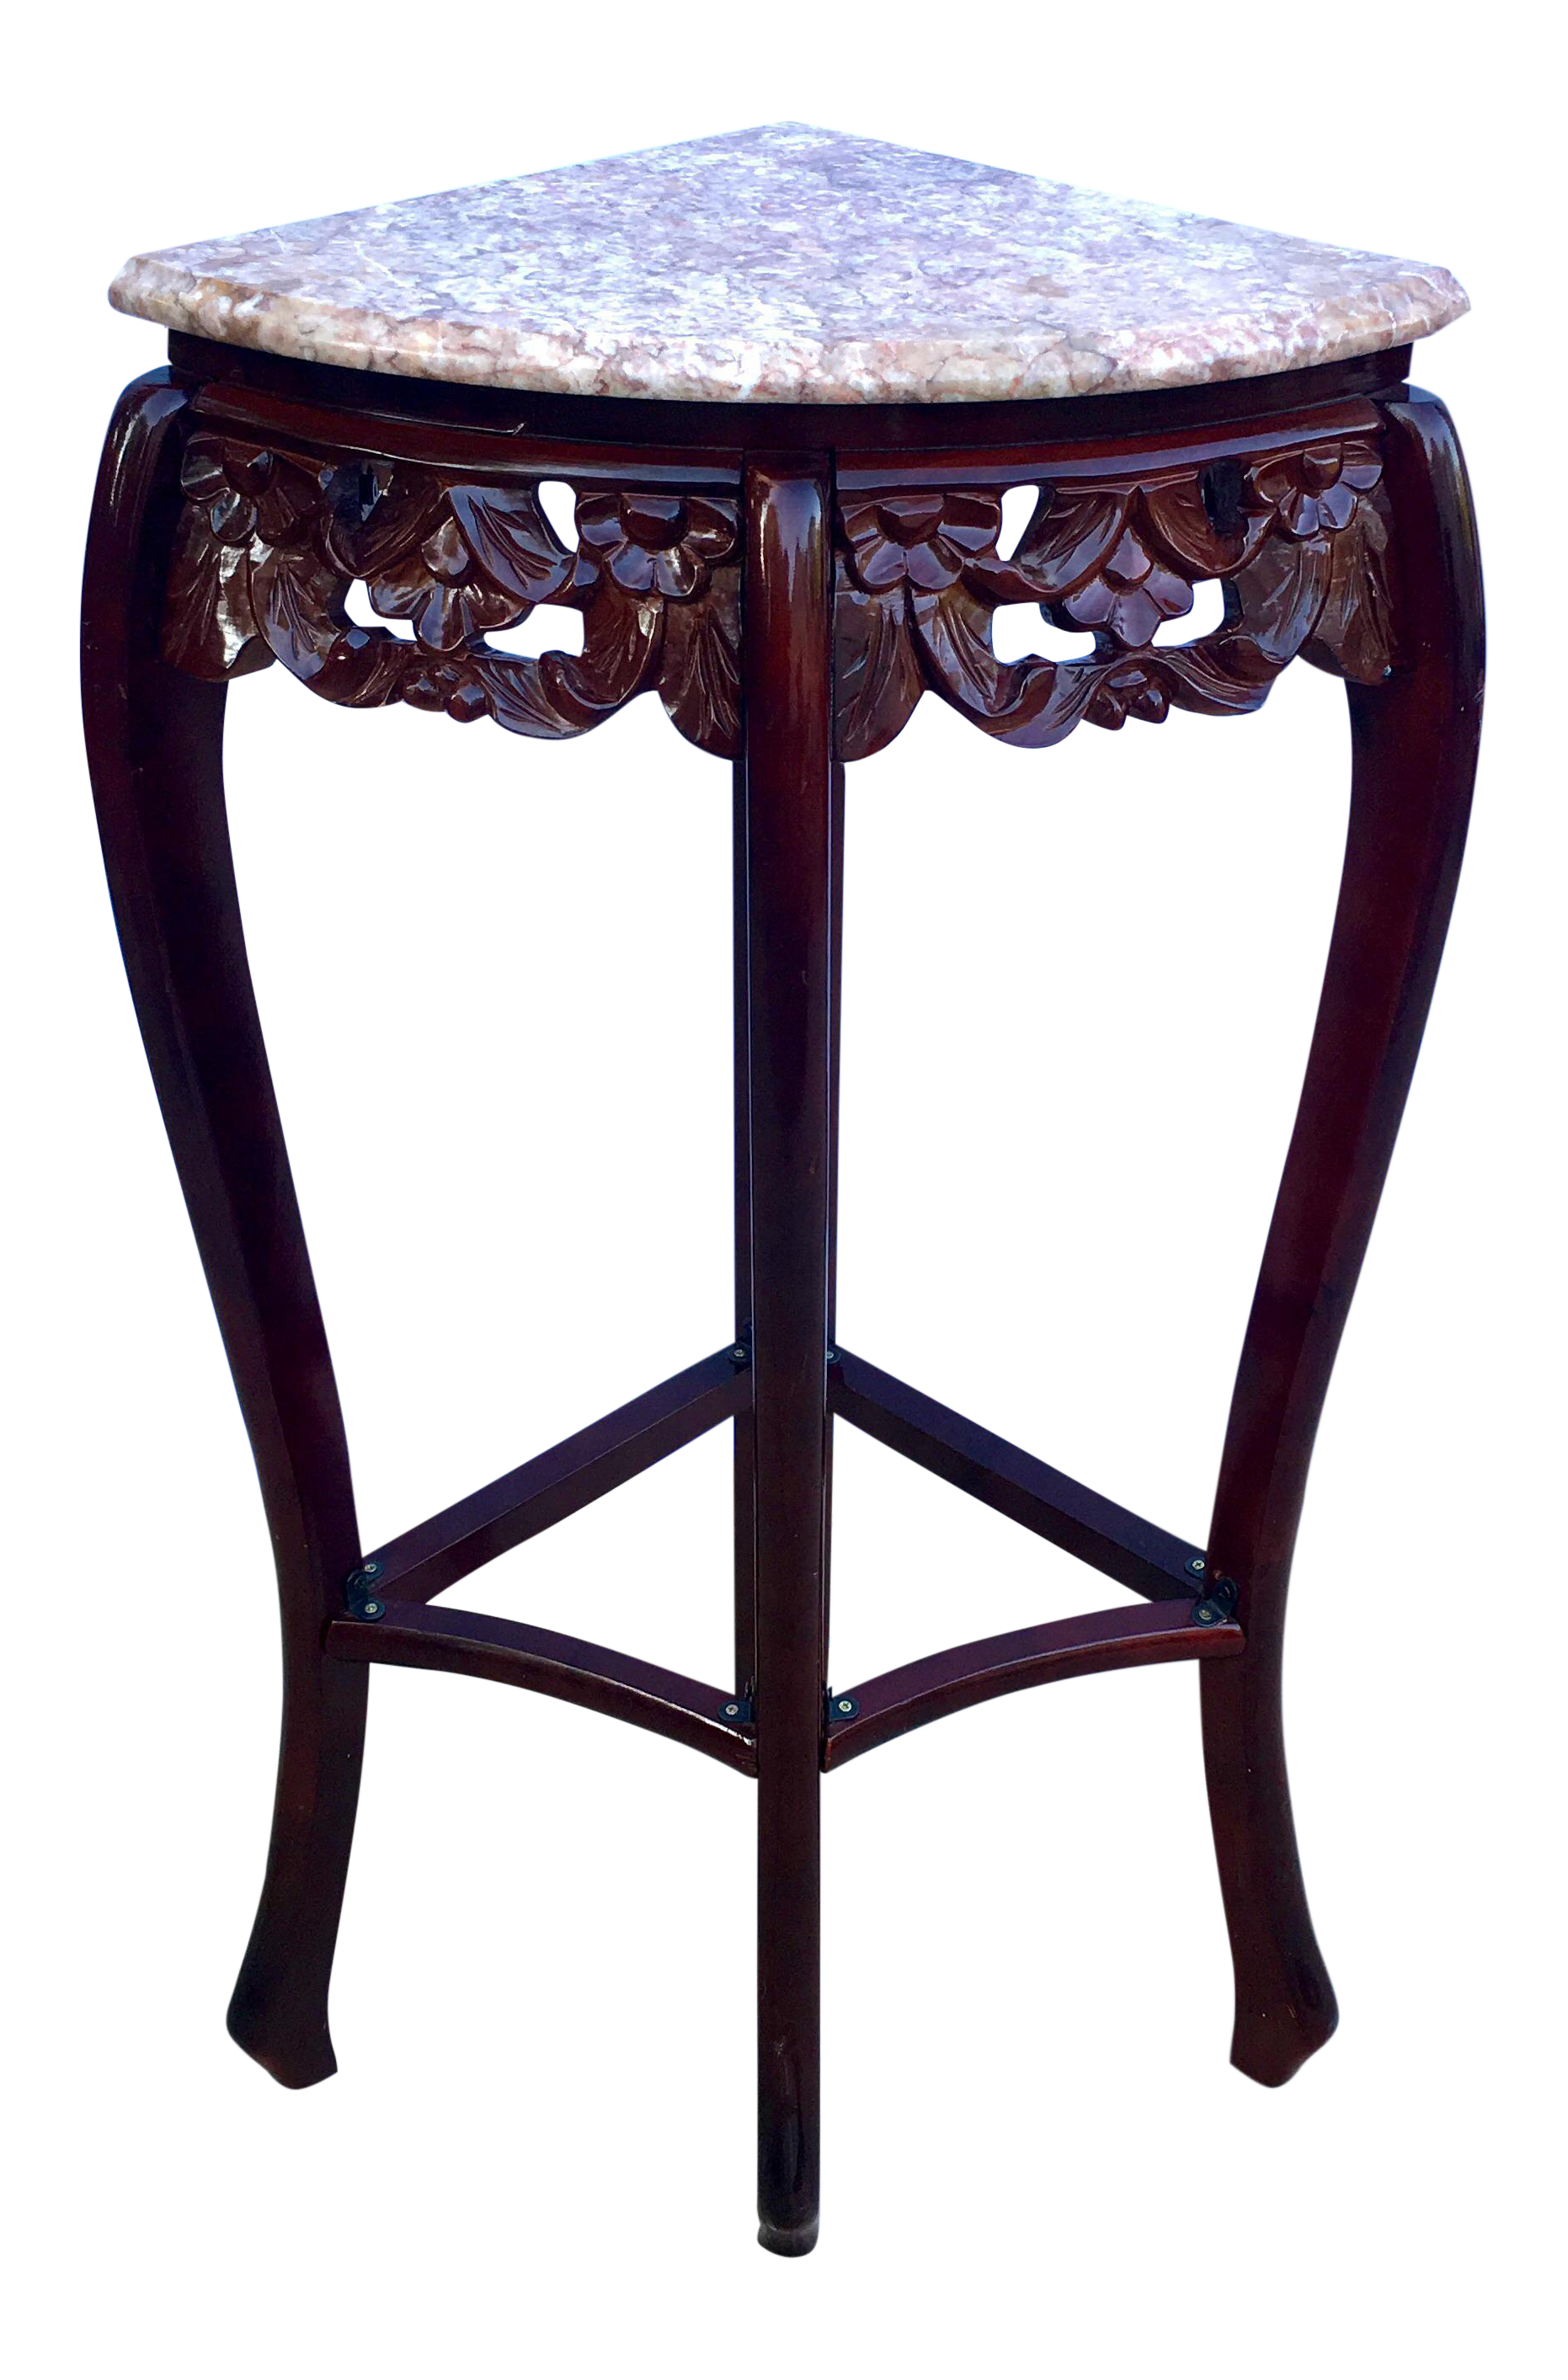 vintage french style pink marble rosewood quarter round corner and table accent chairish ikea garden shelf nice design tea inch tablecloth tools living room sets house interior